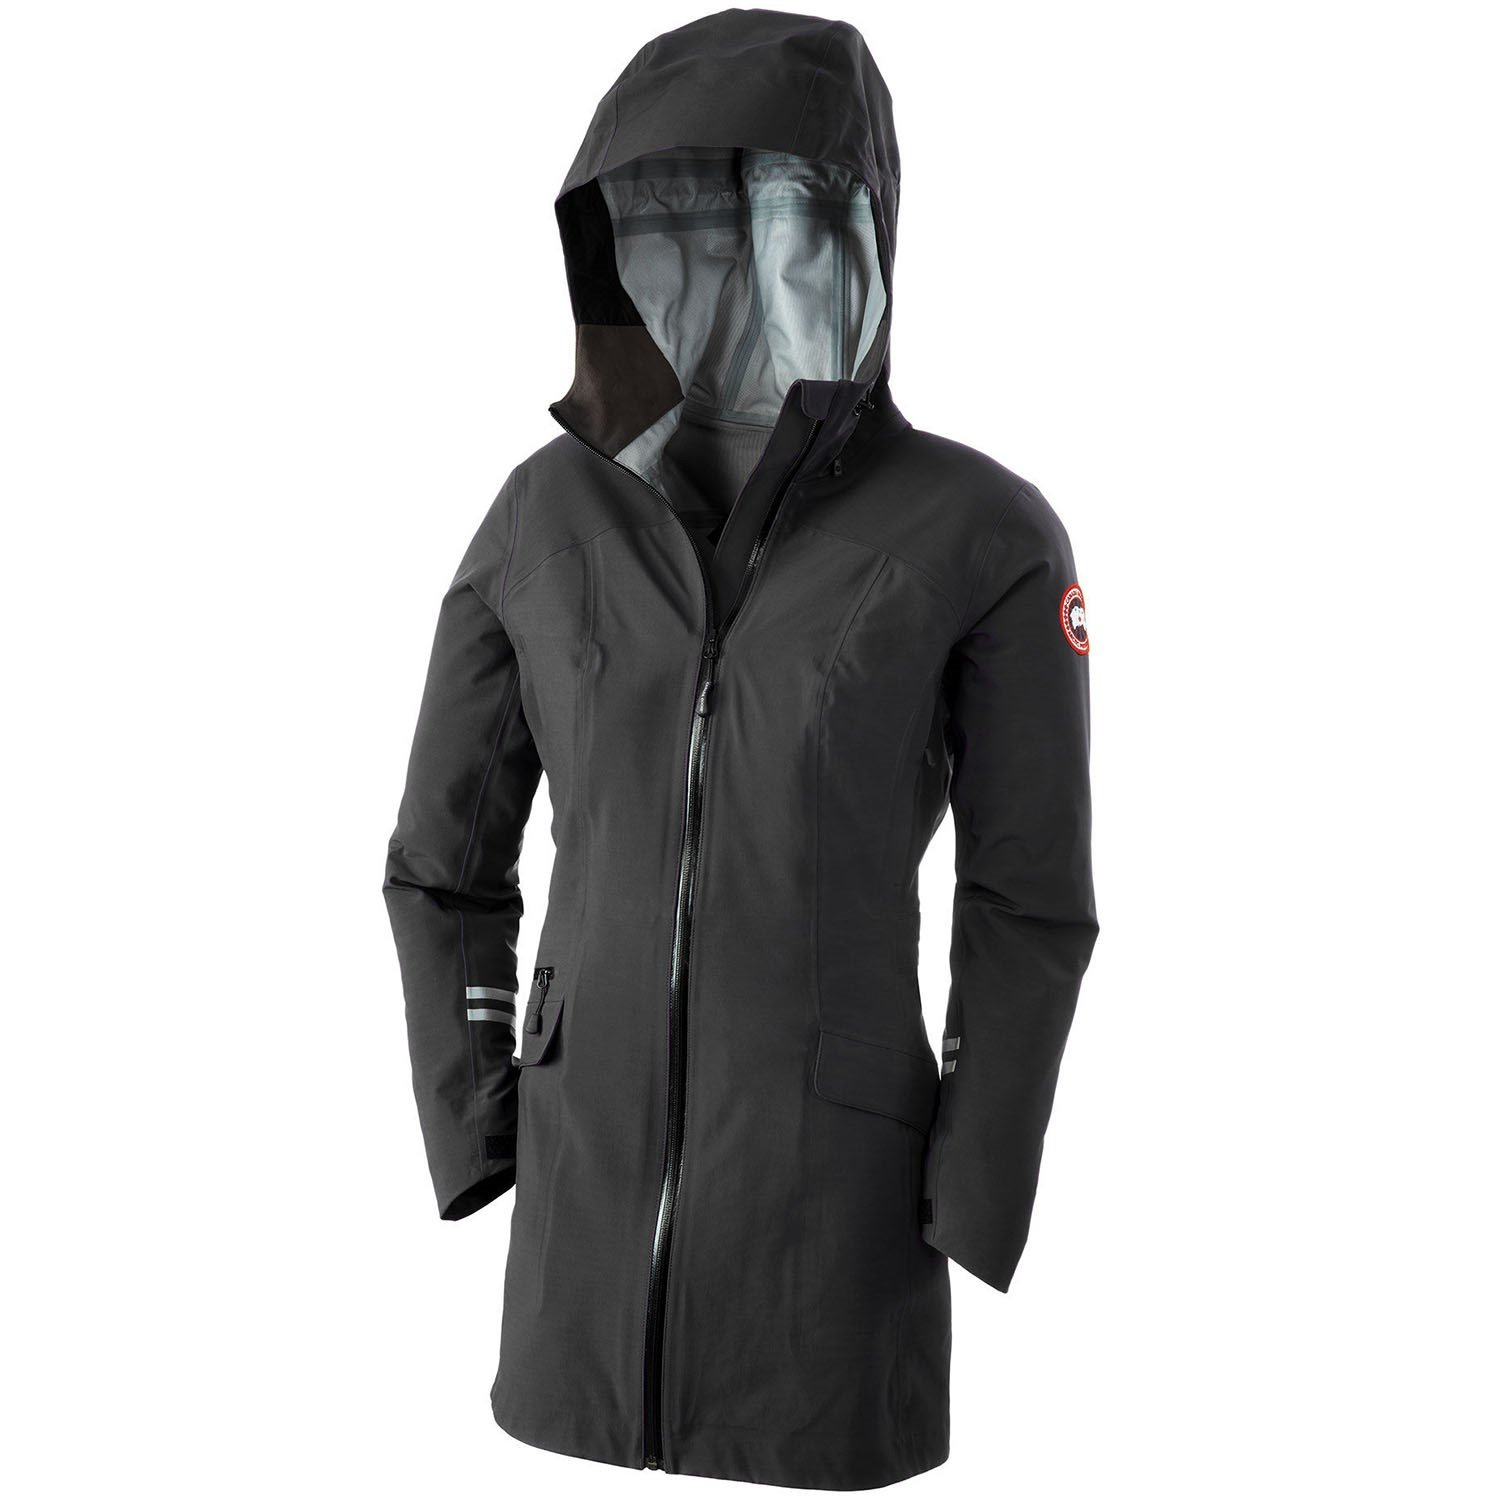 Canada Goose down sale discounts - Canada Goose Coastal Shell Jacket - Women's | evo